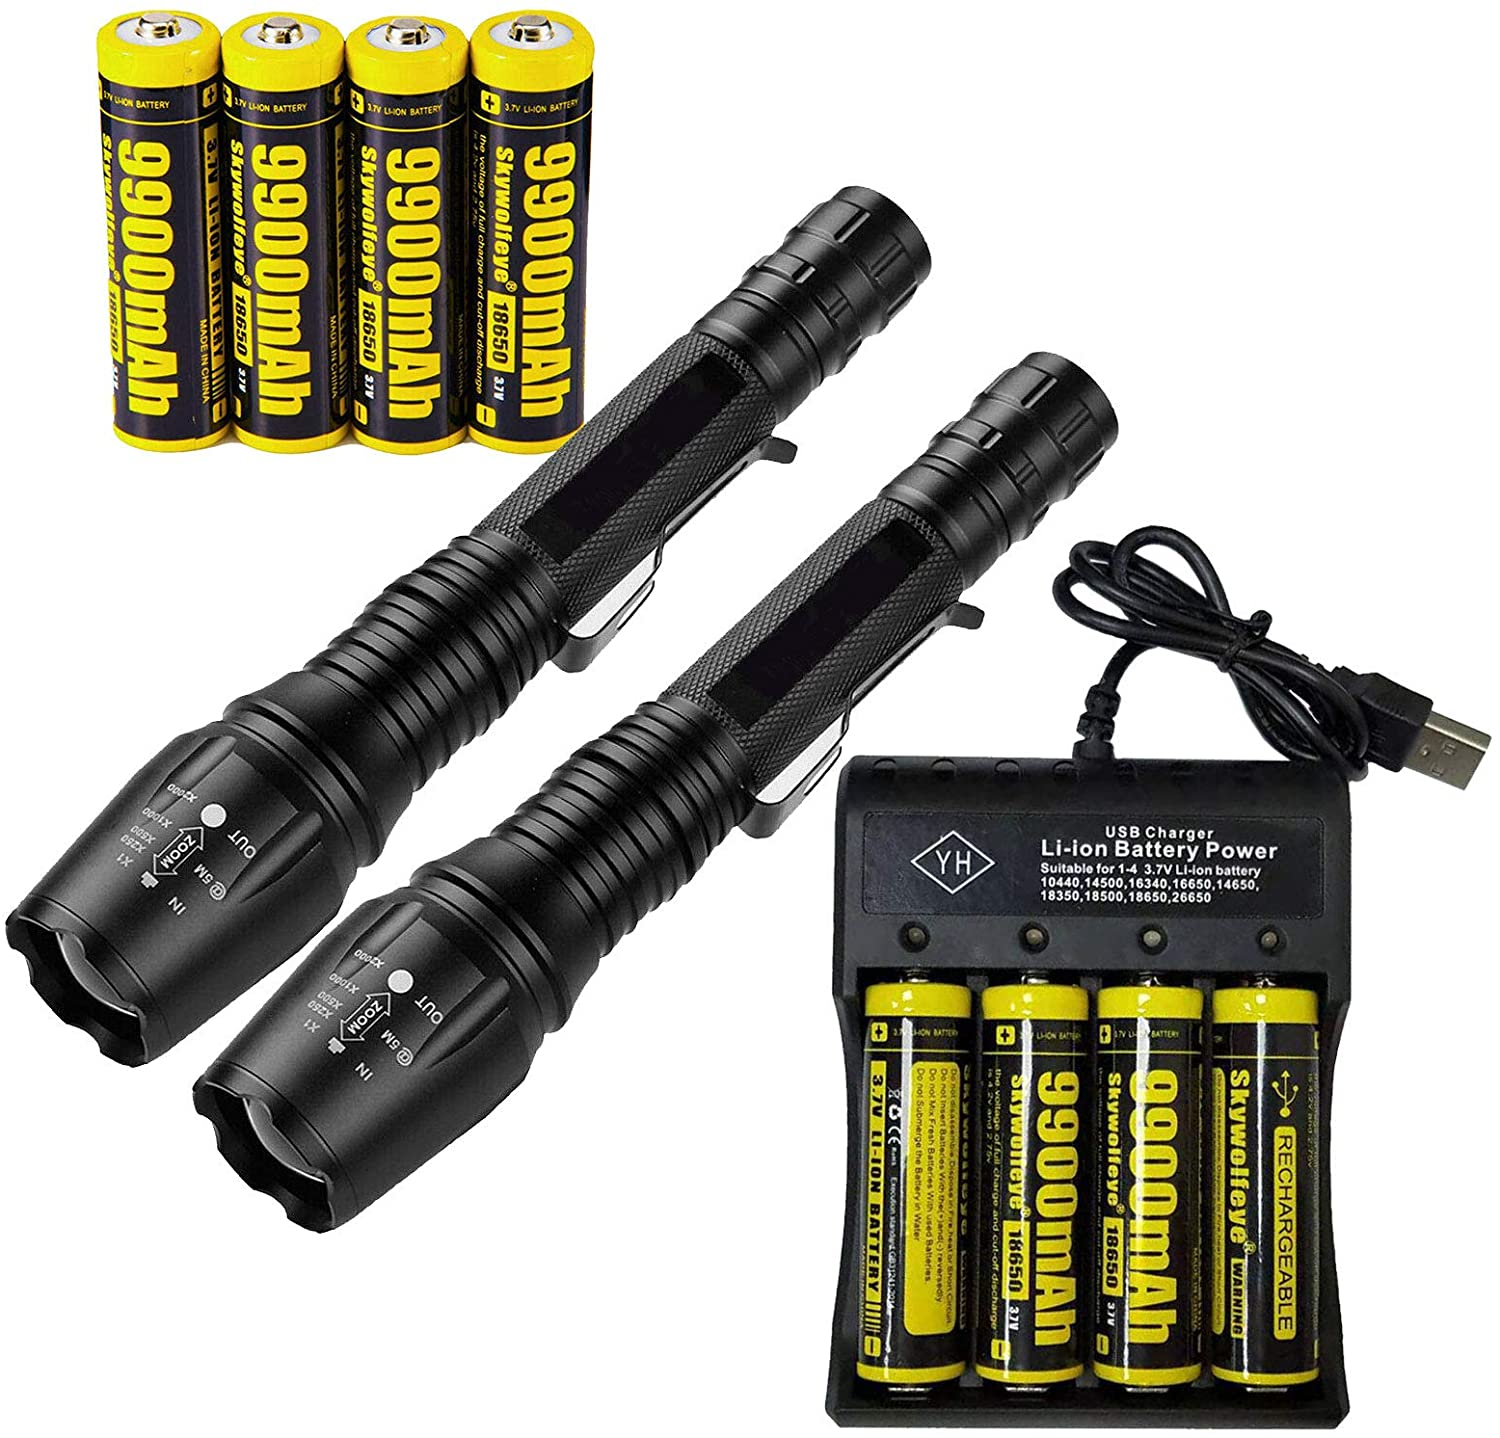 2 Set Tactical 90000LM Zoomable 5 Modes Portable LED 18650 Flashlight 9900mAh Rechargeable Batteries 4 Slots USB Universal Smart Battery Chargers for Camping Hiking Running Outdoor